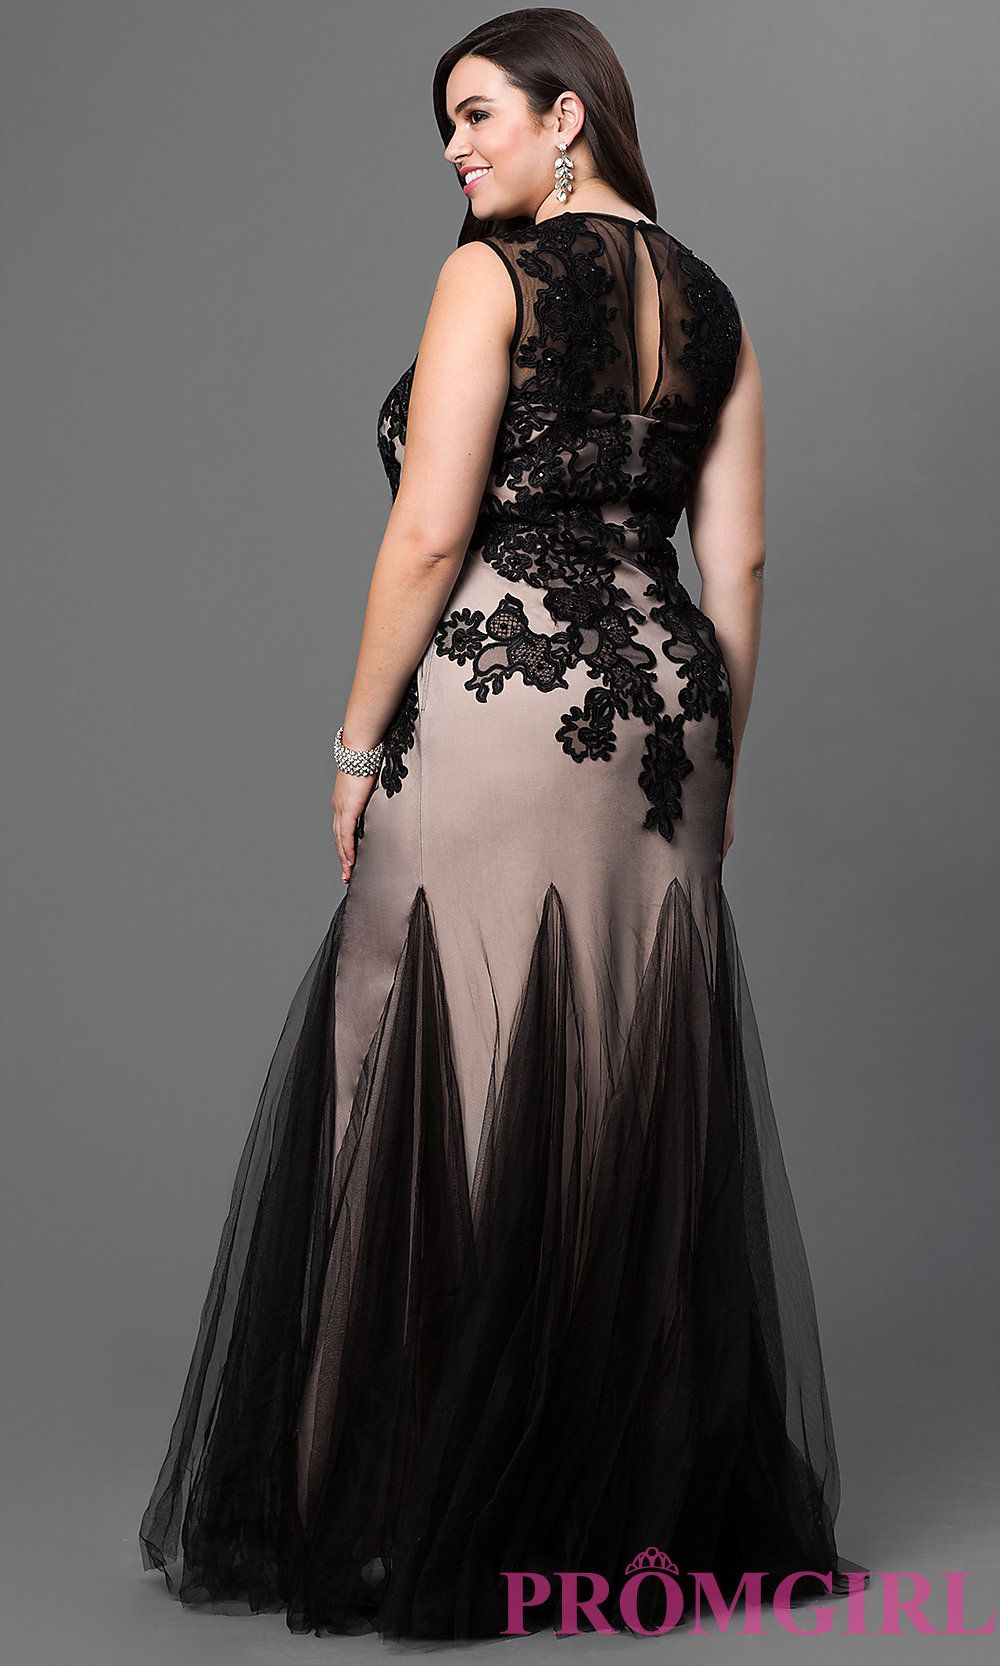 394c7ca2c41 Image of long black and nude sleeveless lace embroidered tulle dress with  key hole cut out scoop neck bodice Back Image